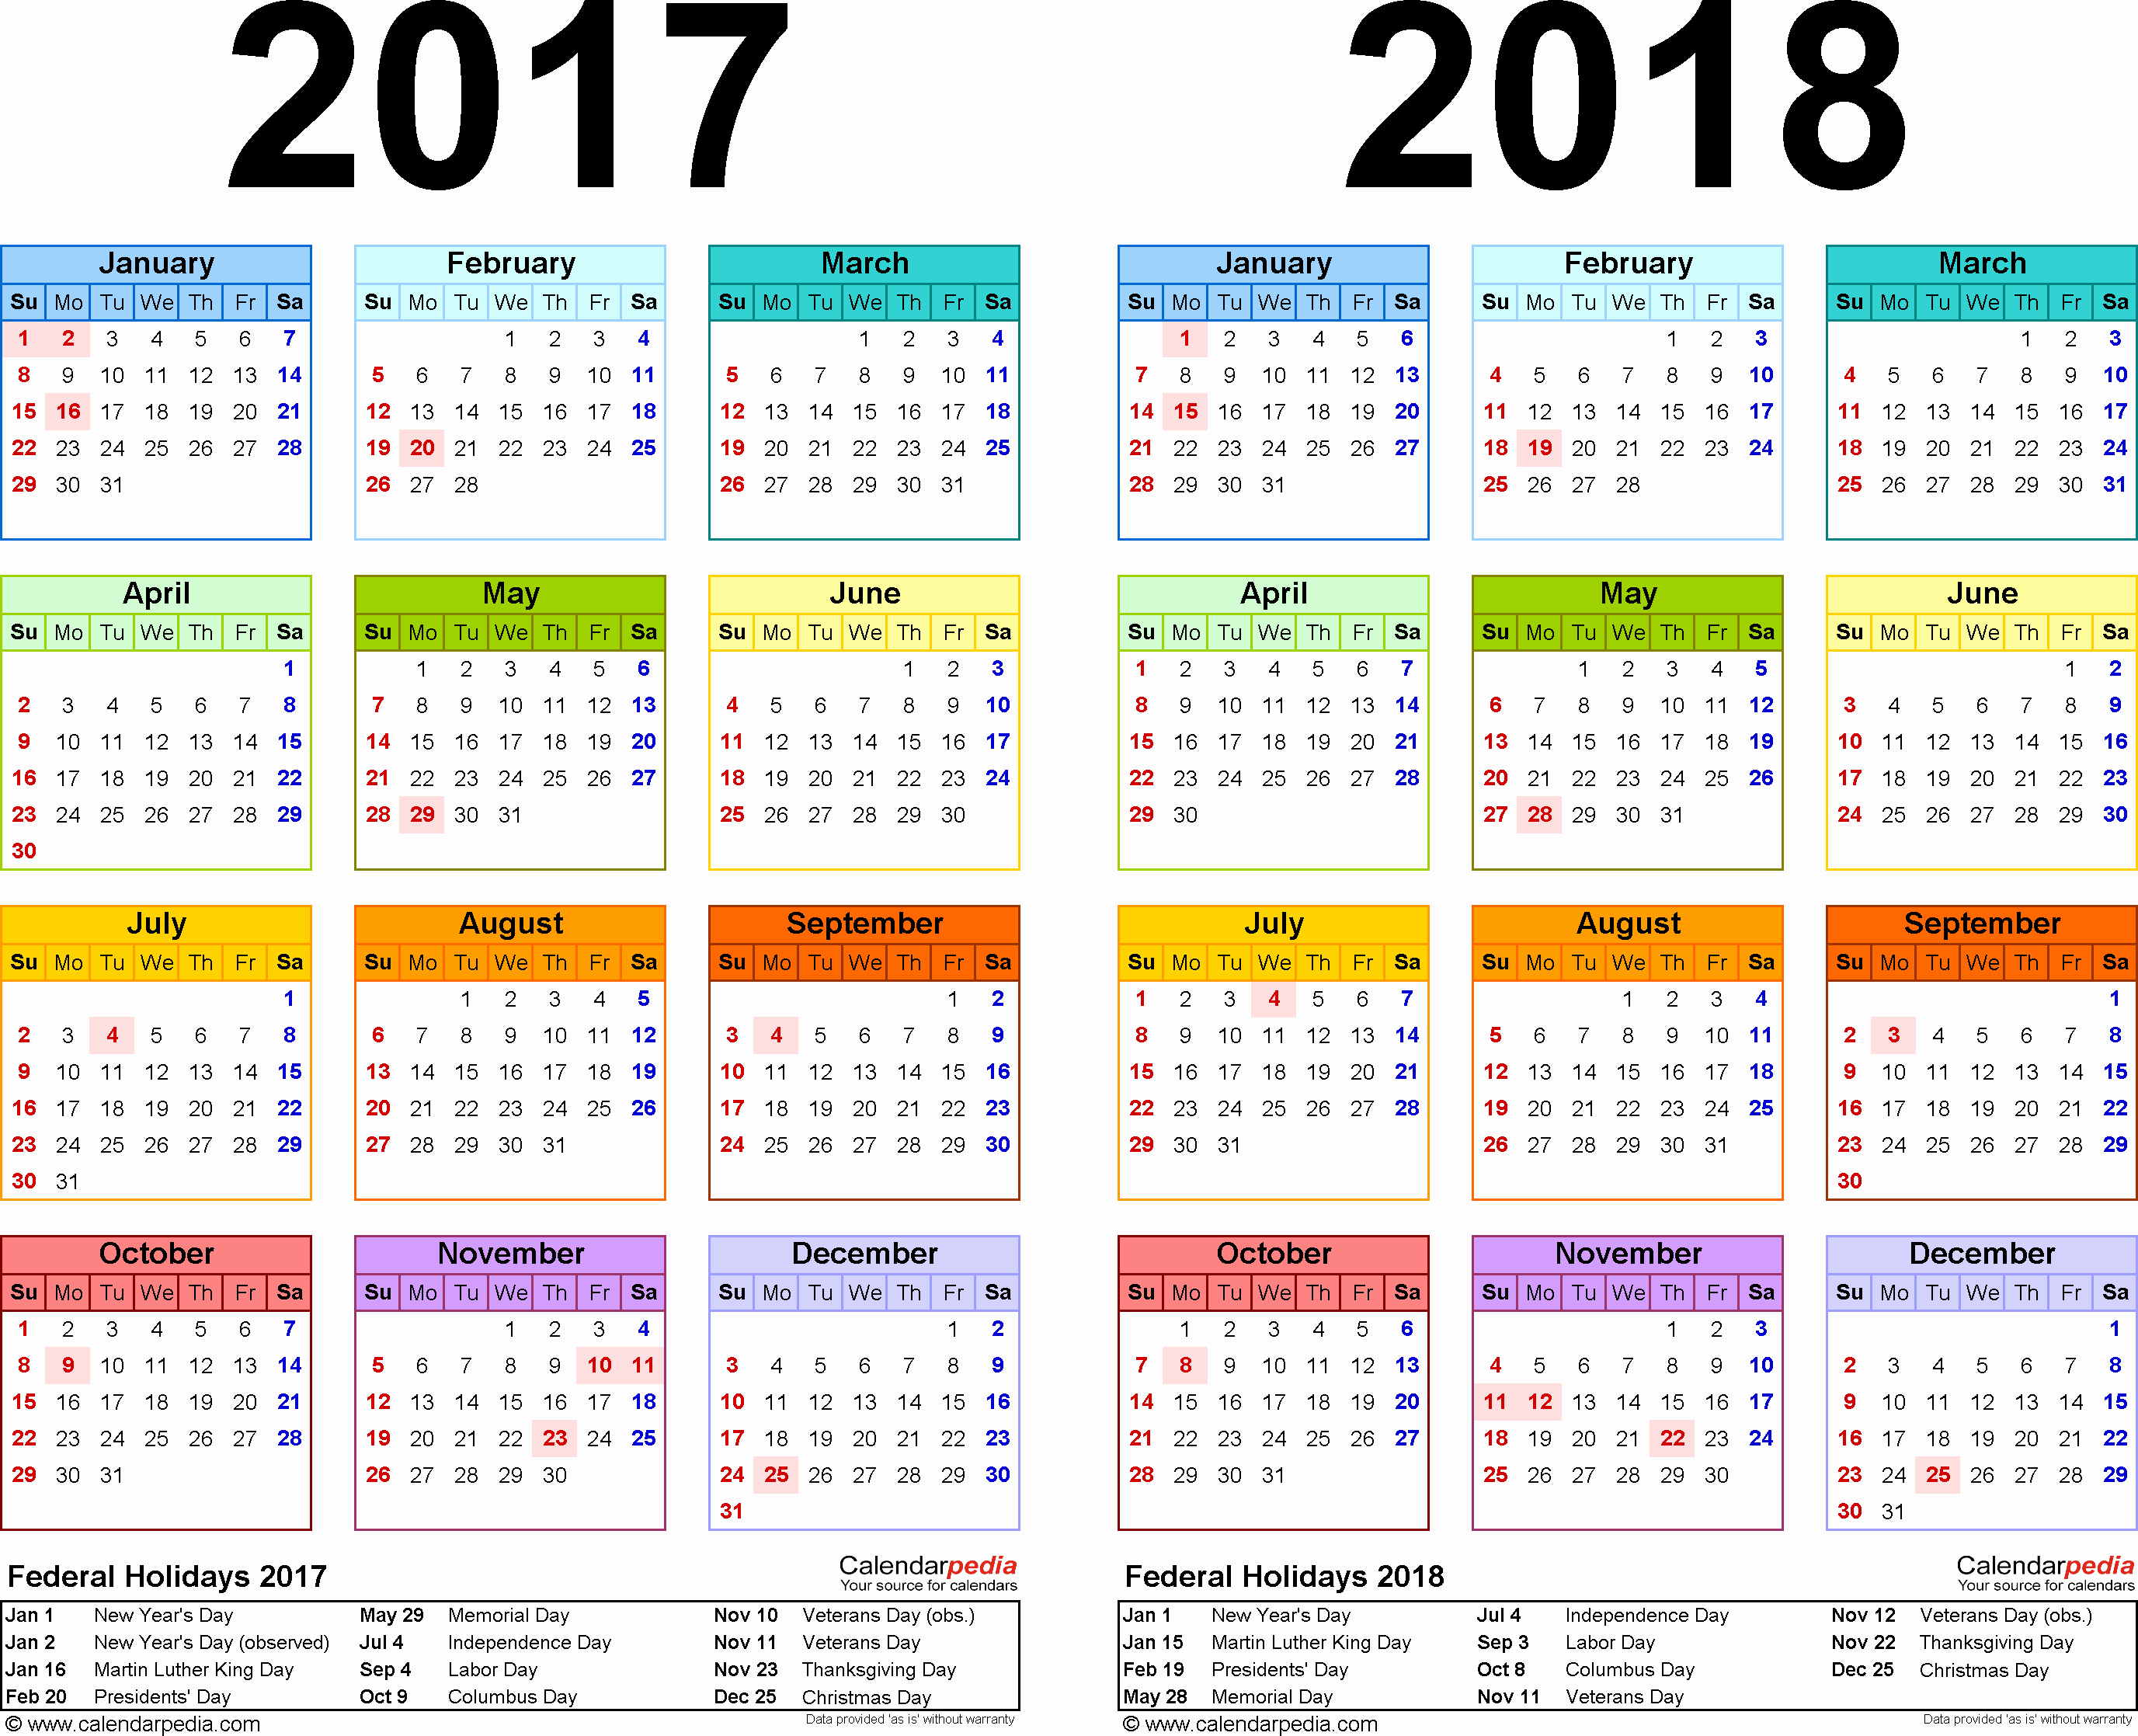 2017 Full Year Calendar Template New 2017 2018 Calendar Free Printable Two Year Pdf Calendars